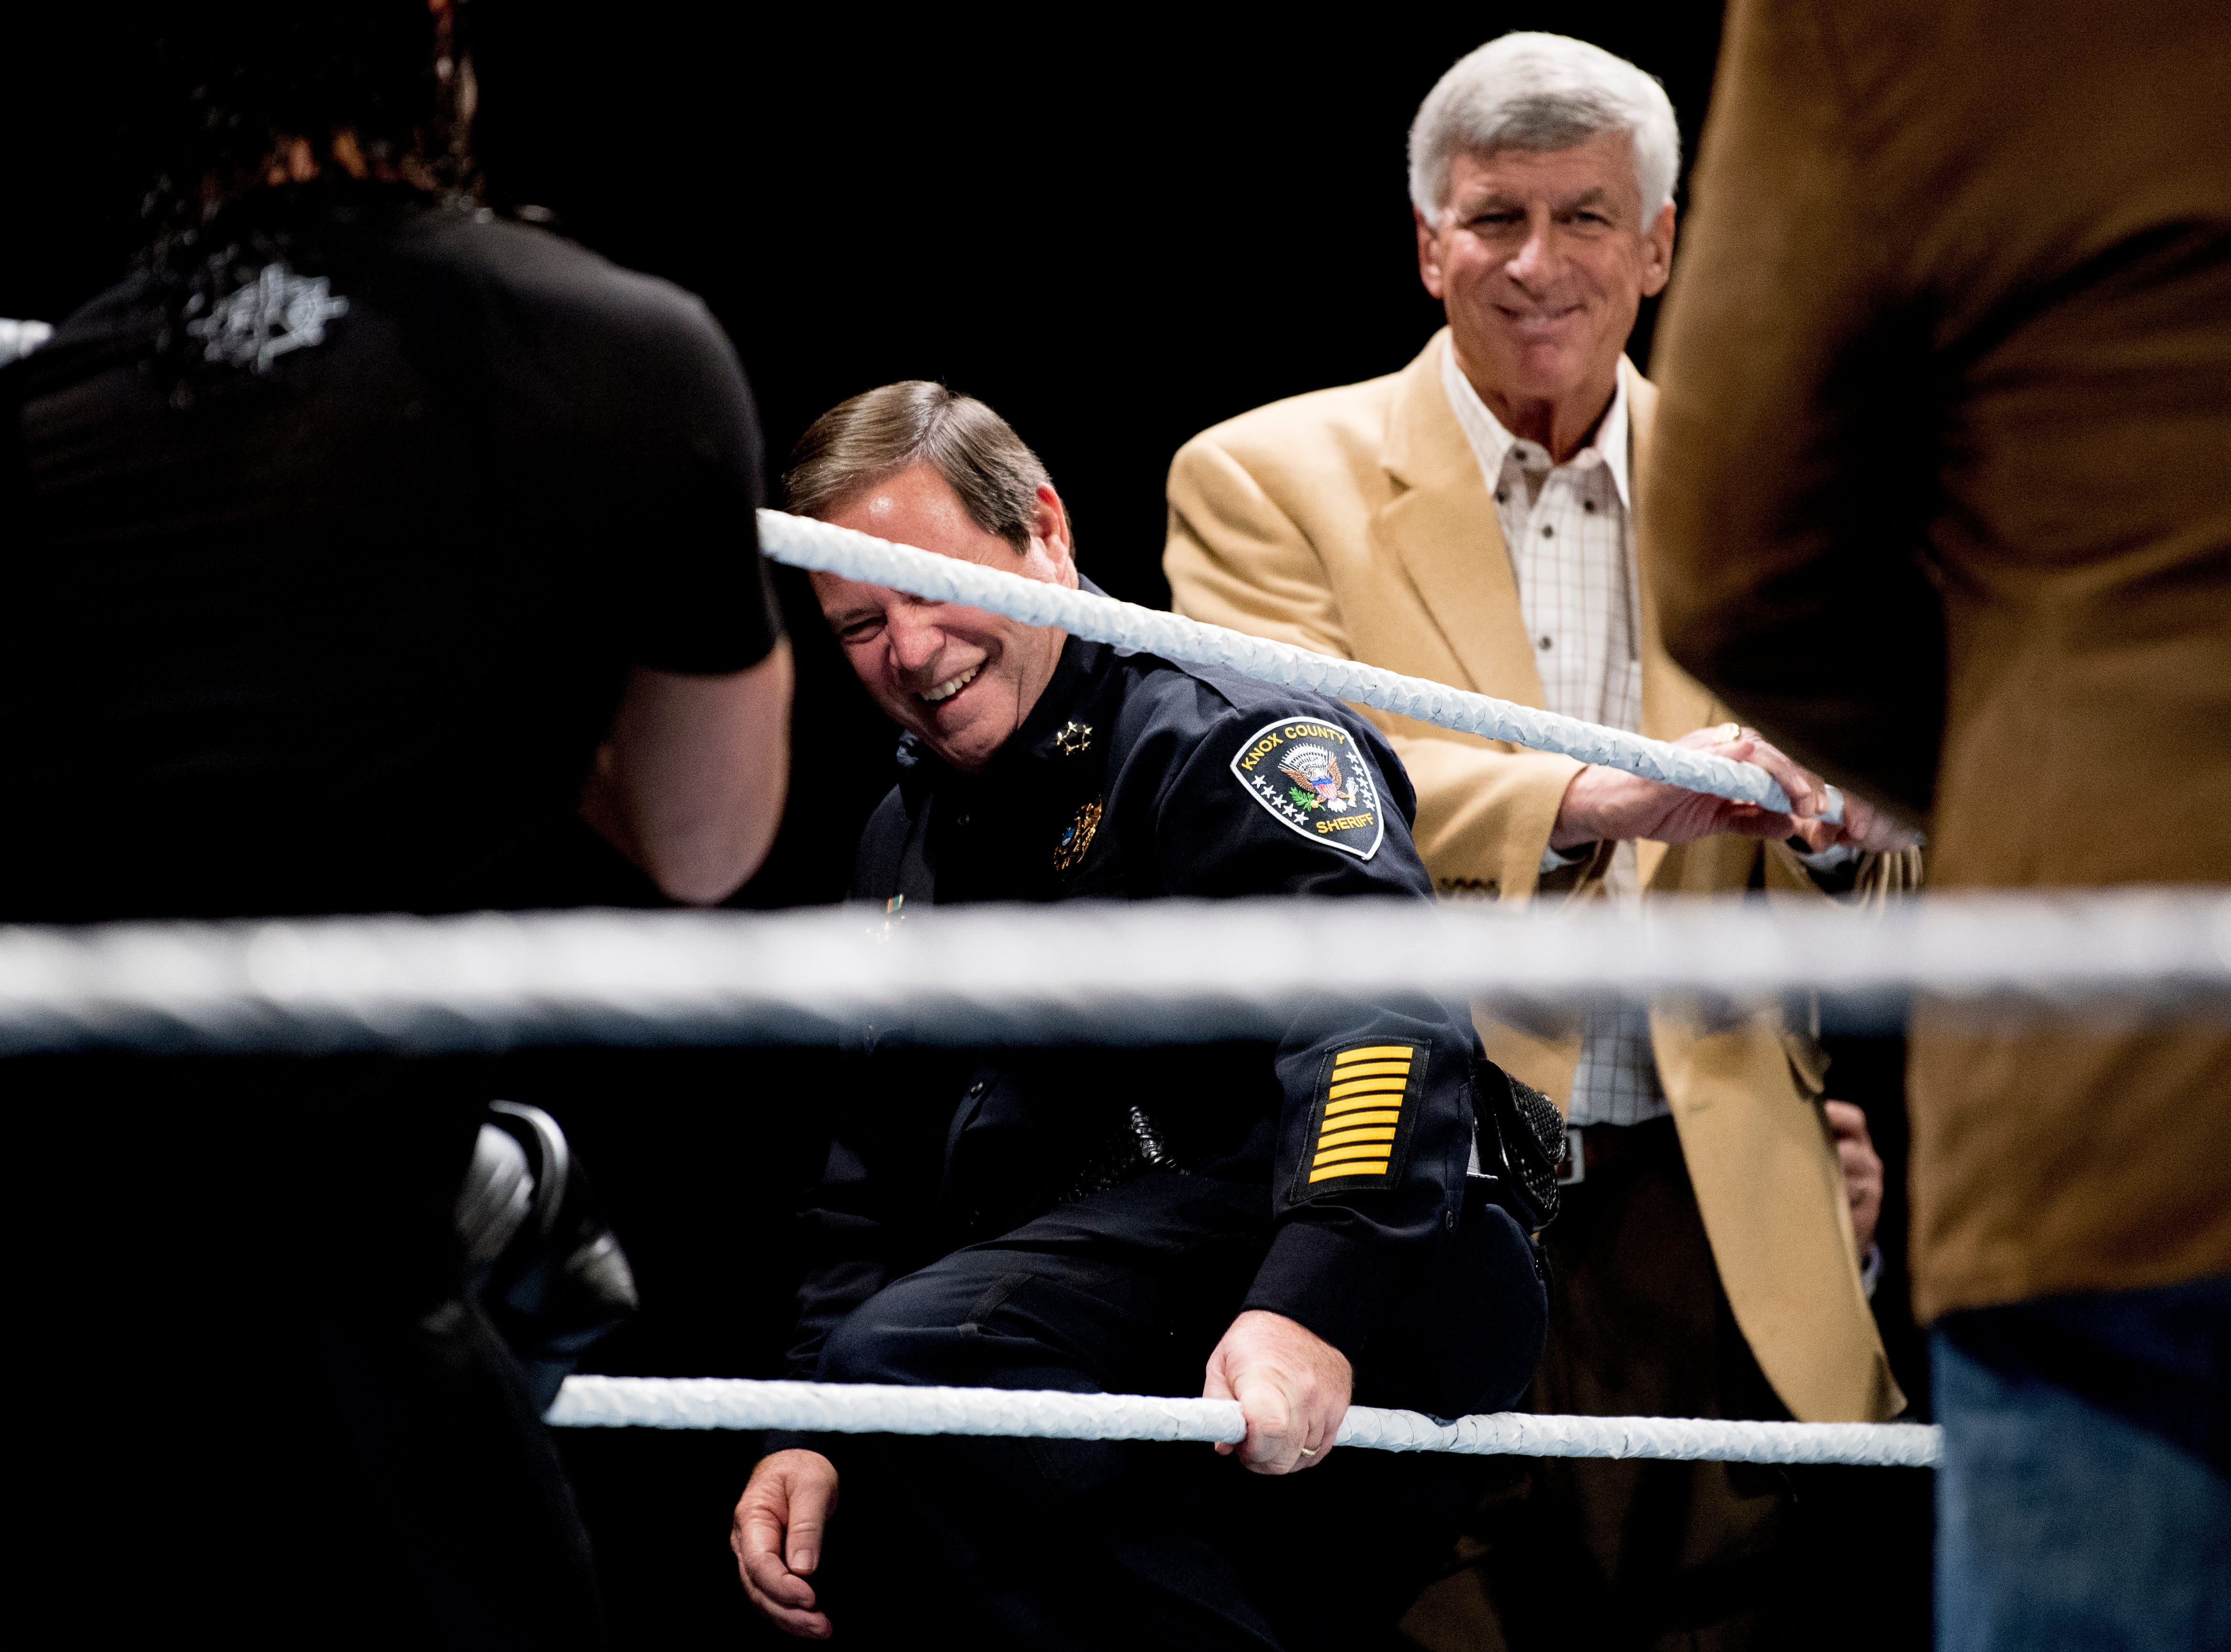 Knox County Sheriff Tom Spangler enters the ring for a check presentation during a WWE Live performance at the Knoxville Civic Coliseum in Knoxville, Tennessee on Saturday, January 12, 2019. *KNOXVILLE NEWS SENTINEL USE ONLY*